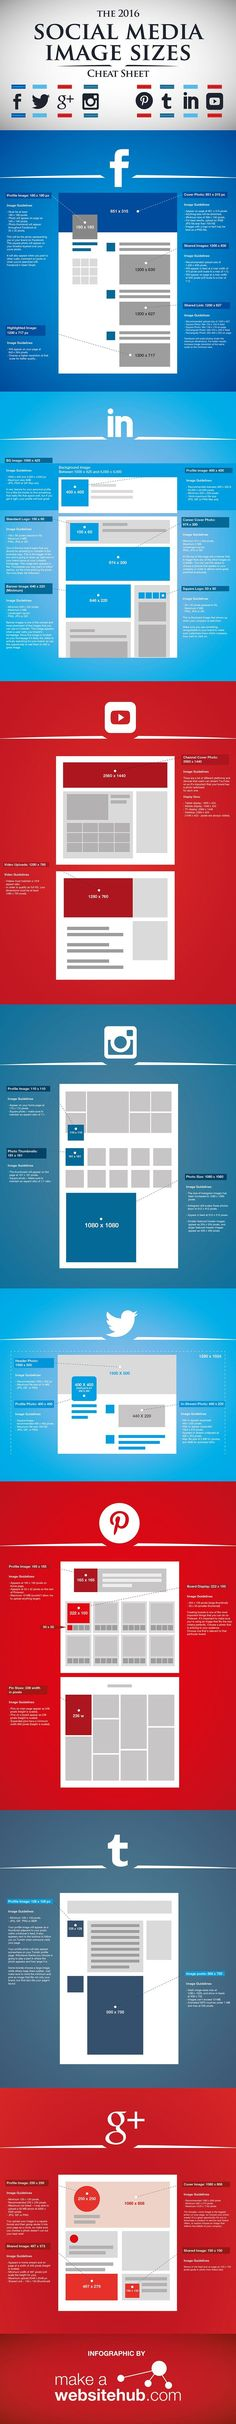 The 2016 Social Media Image Sizes Cheat Sheet